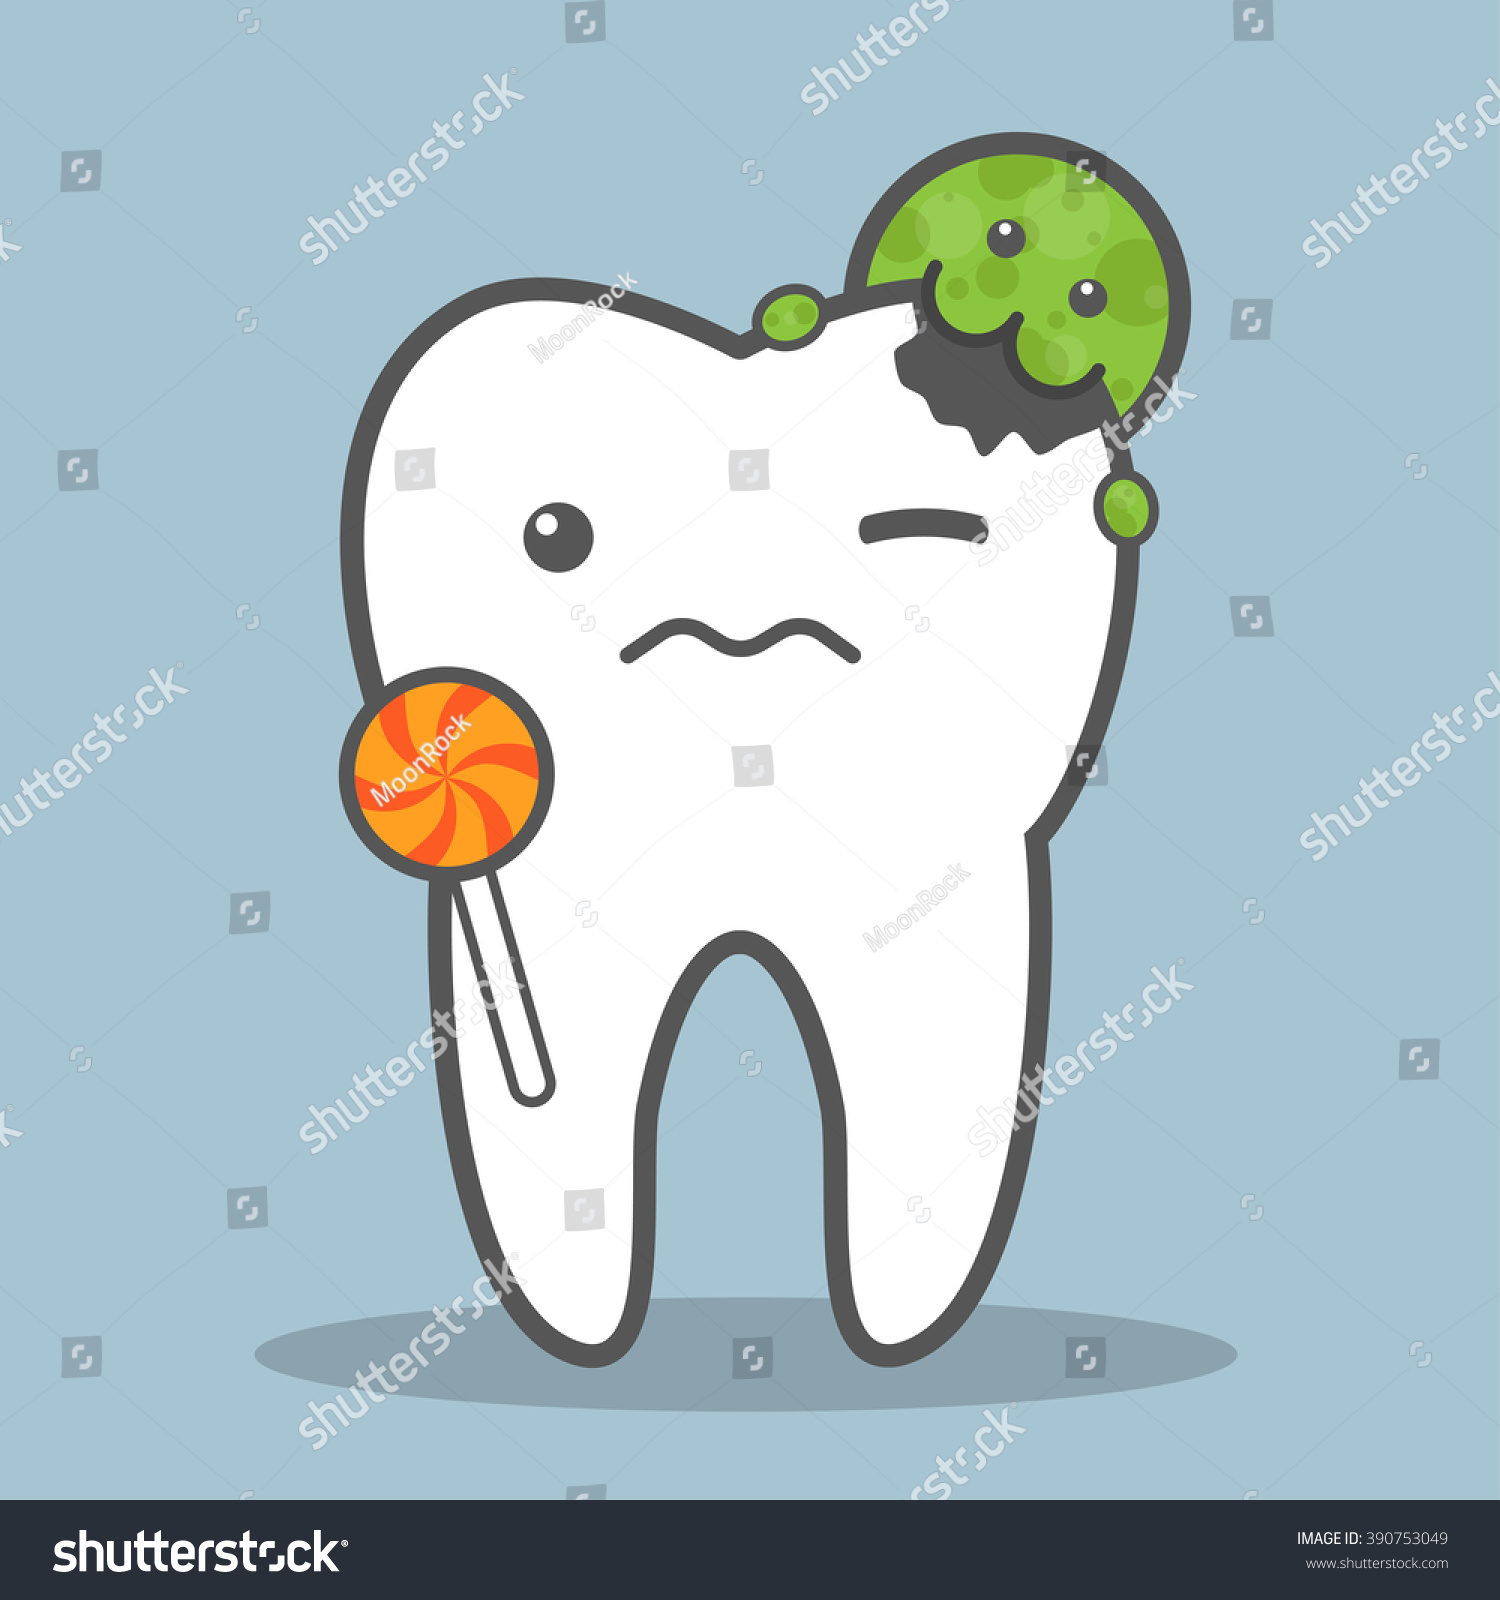 Tooth with lollipop attacked by bacteria Dental caries concept Vector illustration